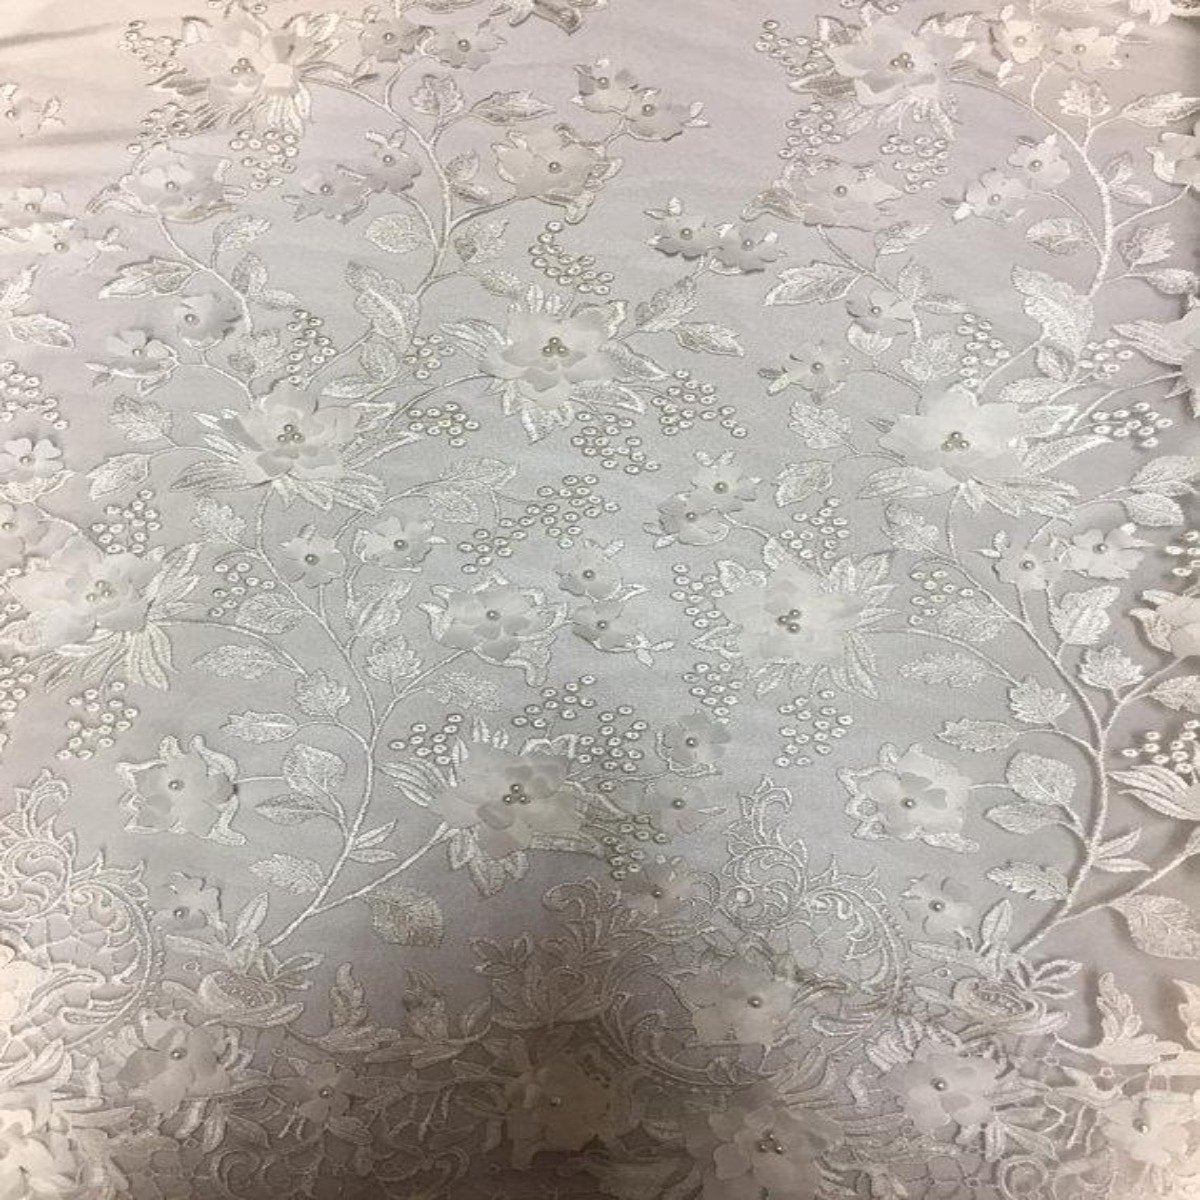 Off White 3D Embroidered Satin Floral Pearl Lace Fabric